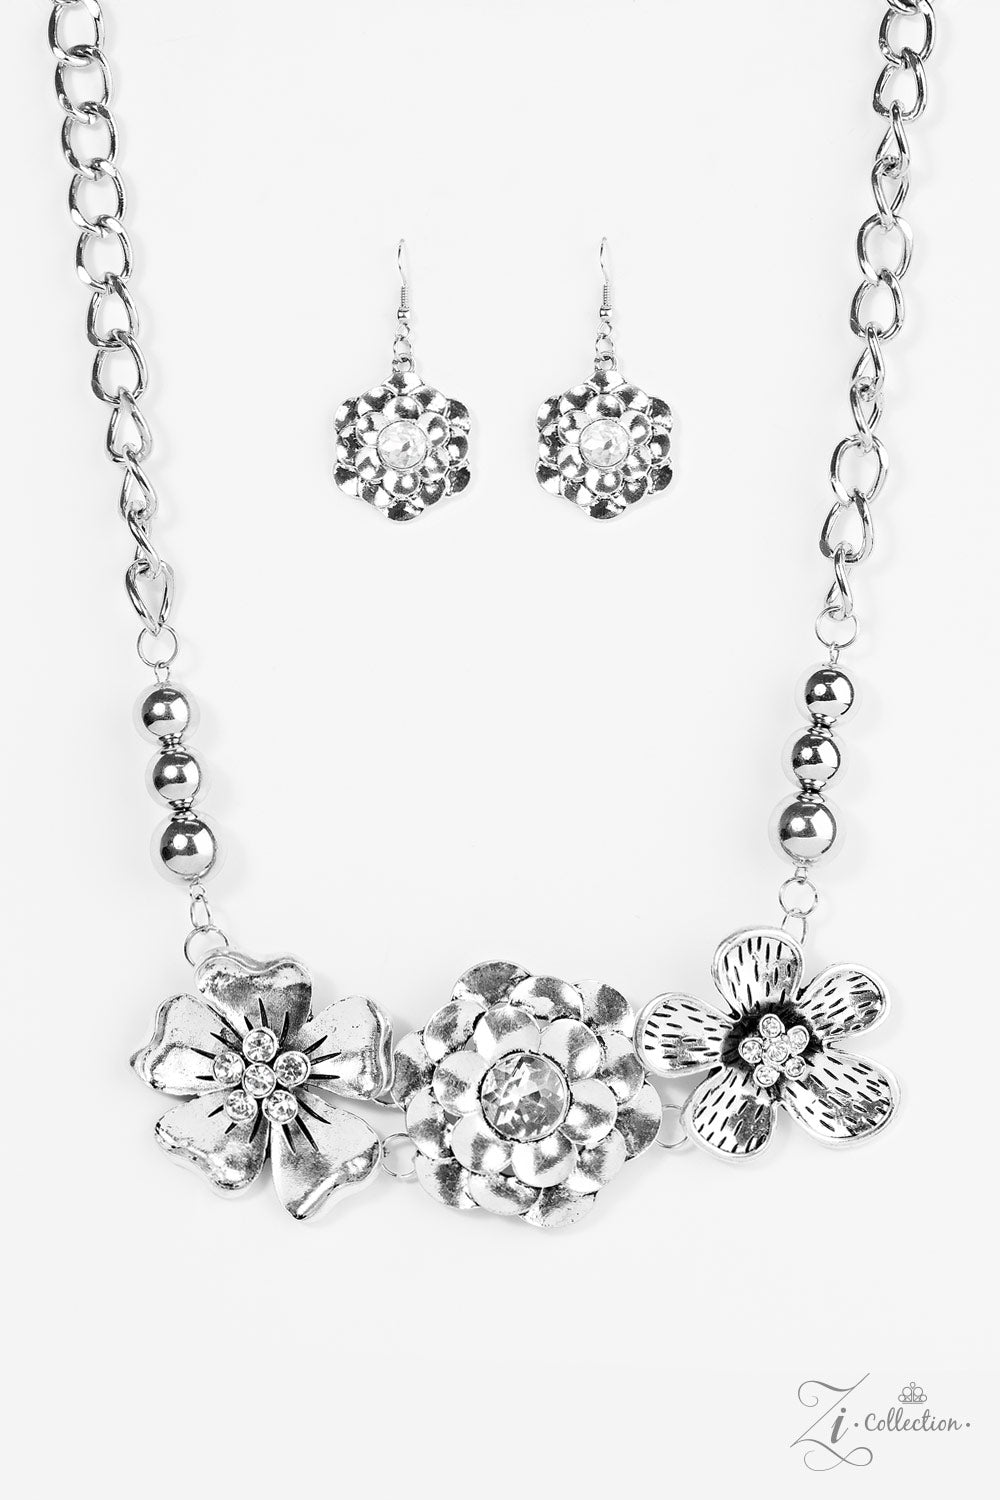 Abloom - Zi Collection - Paparazzi necklaces